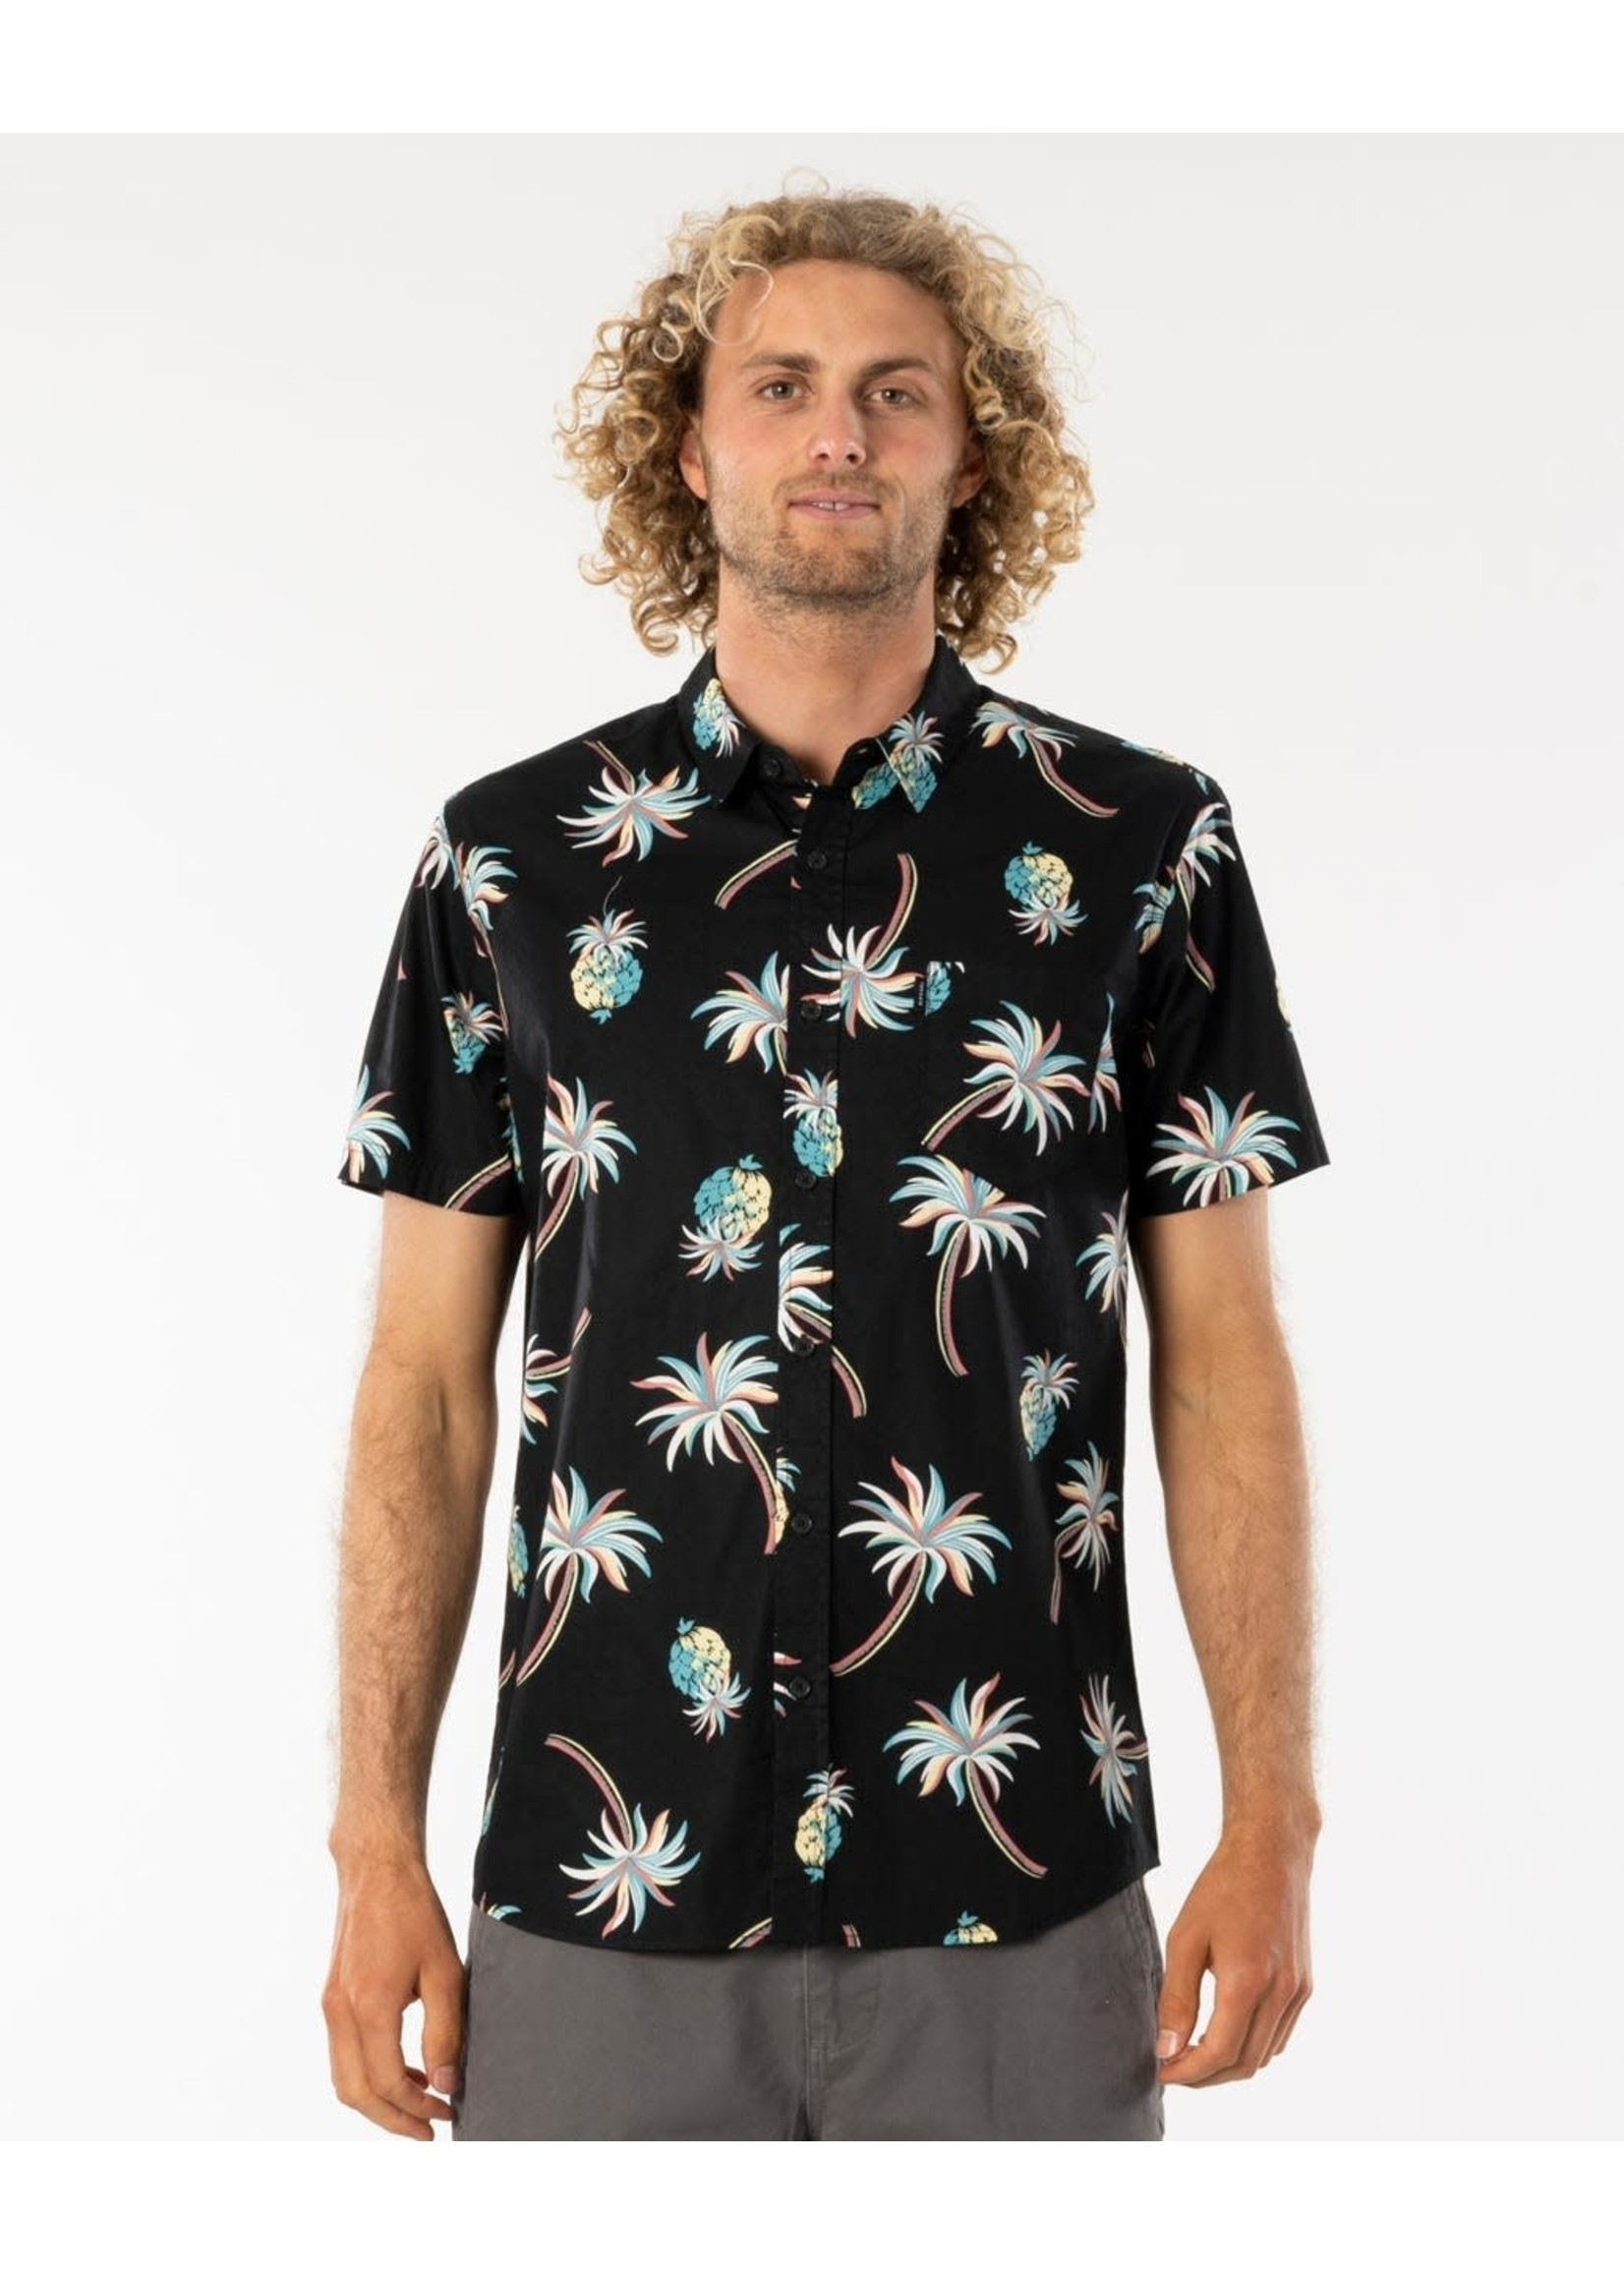 Ripcurl Ripcurl Oasis Party S/S Shirt